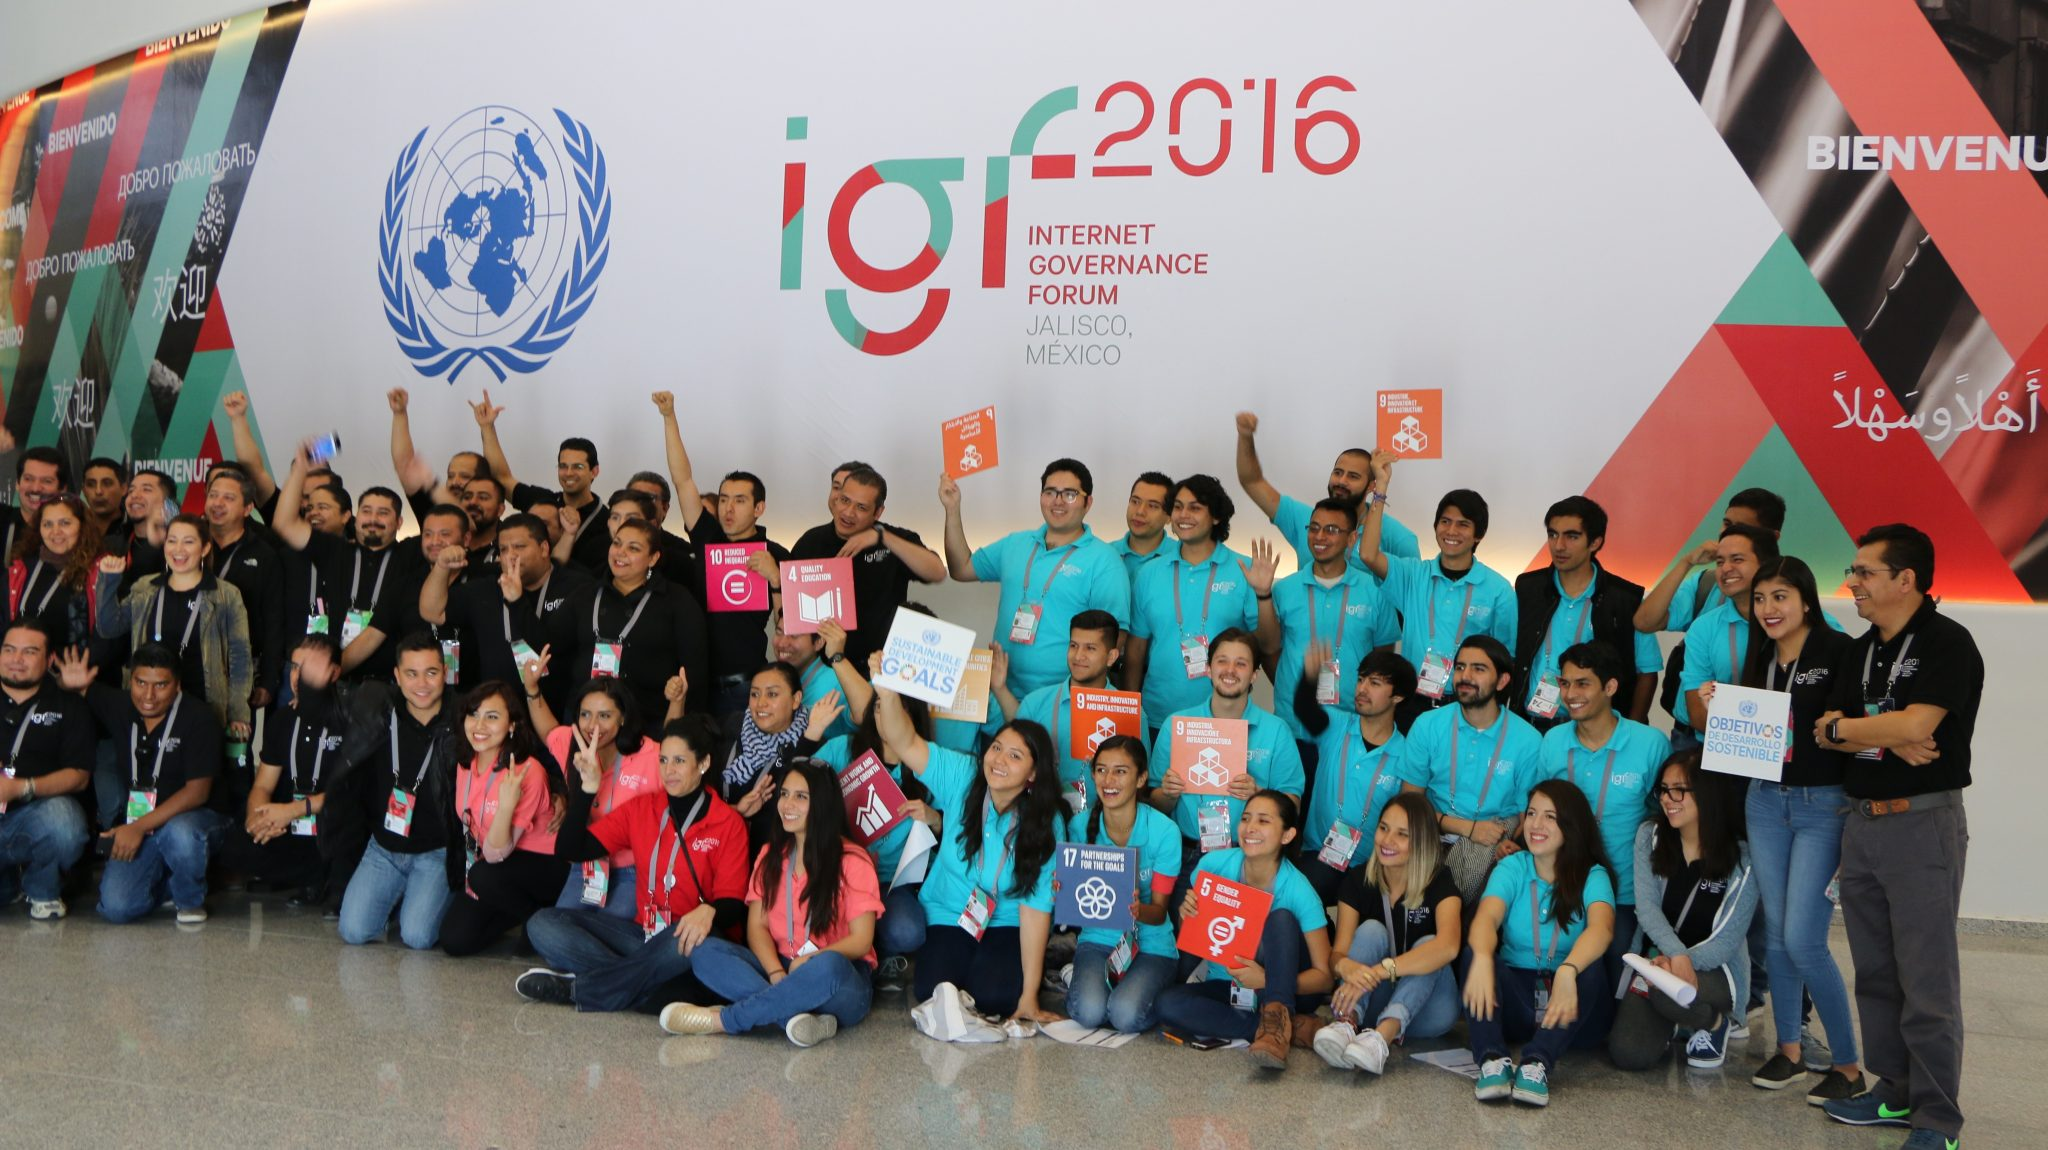 Photo: Internet Governance Forum participants and volunteers in Jalisco, Mexico, pose with the Sustainable Development Goal icons.